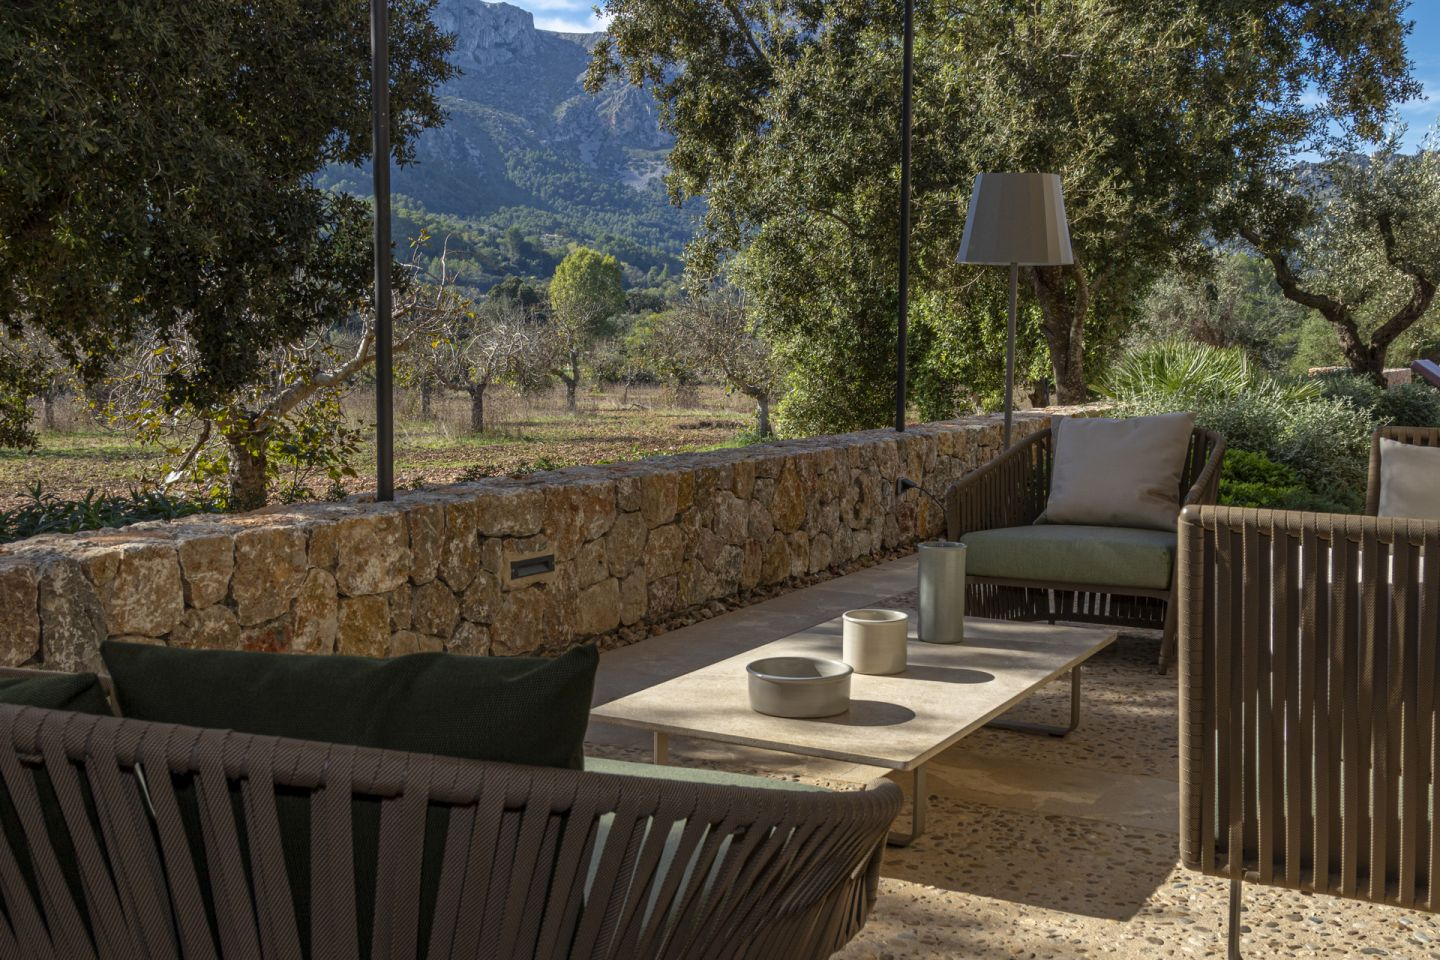 5 Bed Countryside House for sale in POLLENSA 2